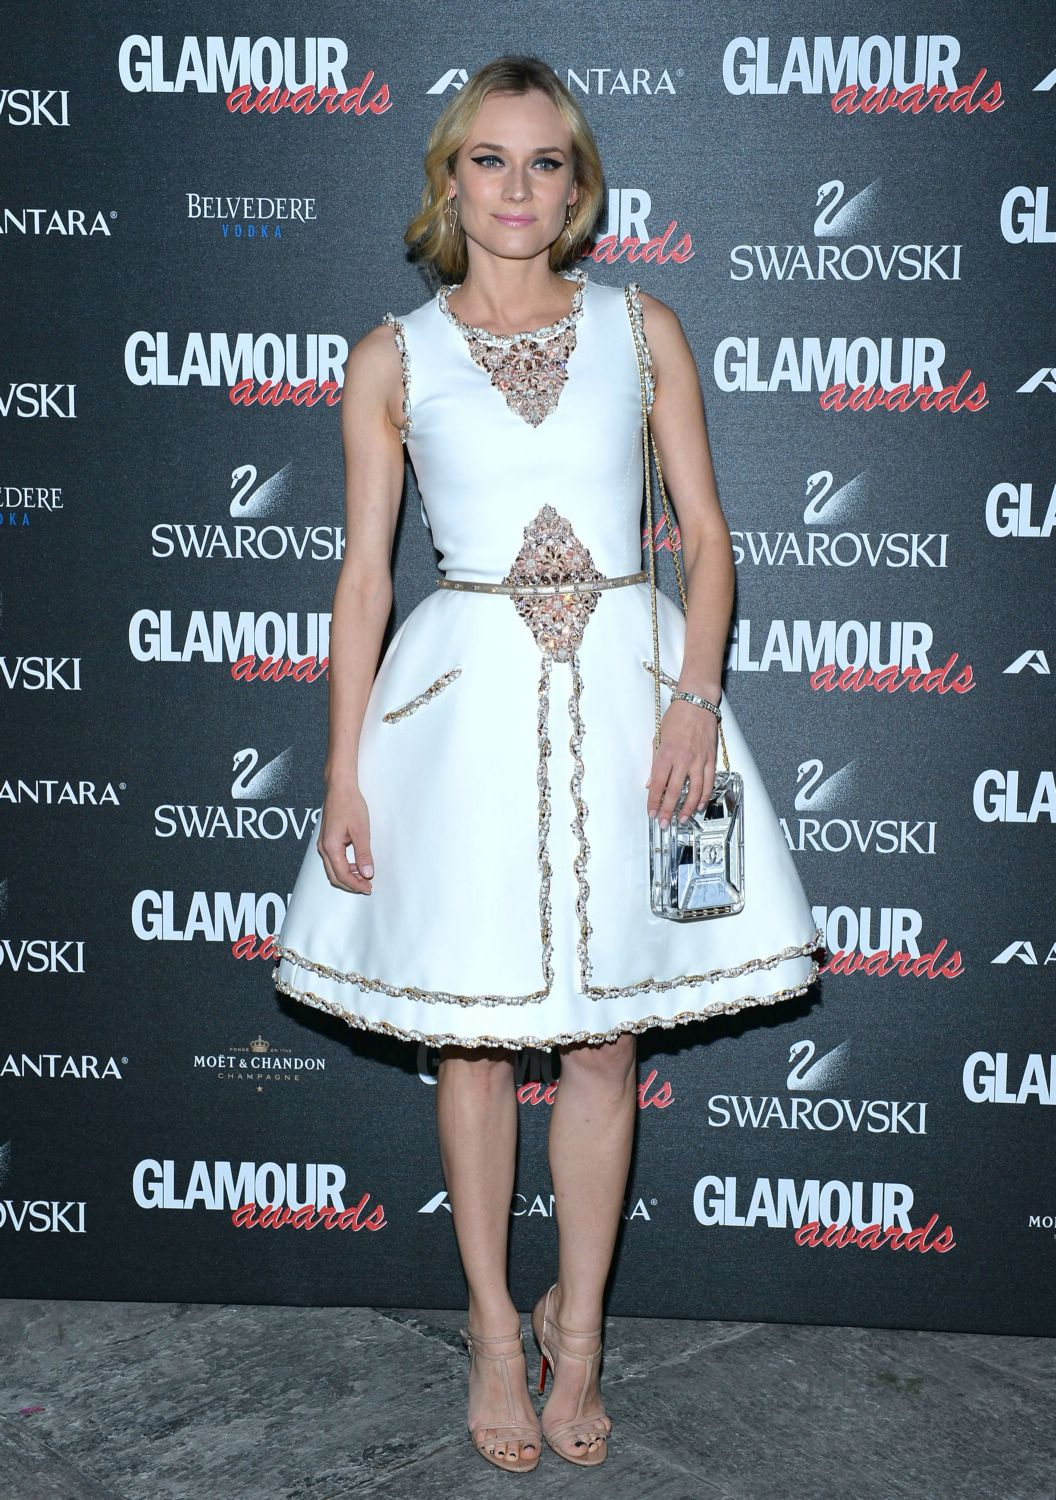 diane-kruger-chanel-couture-2014-glamour-awards/